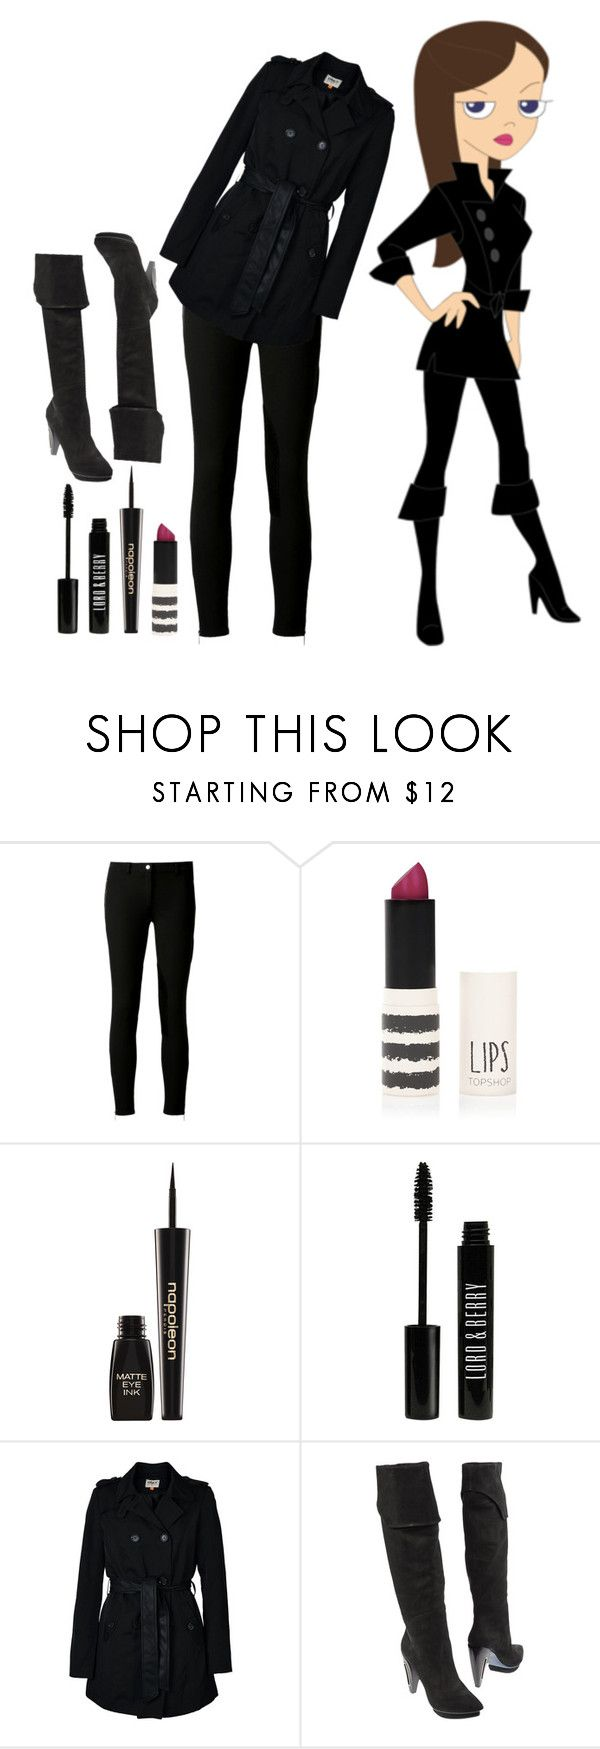 """Phineas and Ferb: Vanessa Doofensmirtz"" by infinitygirl ❤ liked on Polyvore featuring Guide London, Michael Kors, Topshop, Napoleon Perdis, Lord & Berry, ONLY and COSTUME NATIONAL"